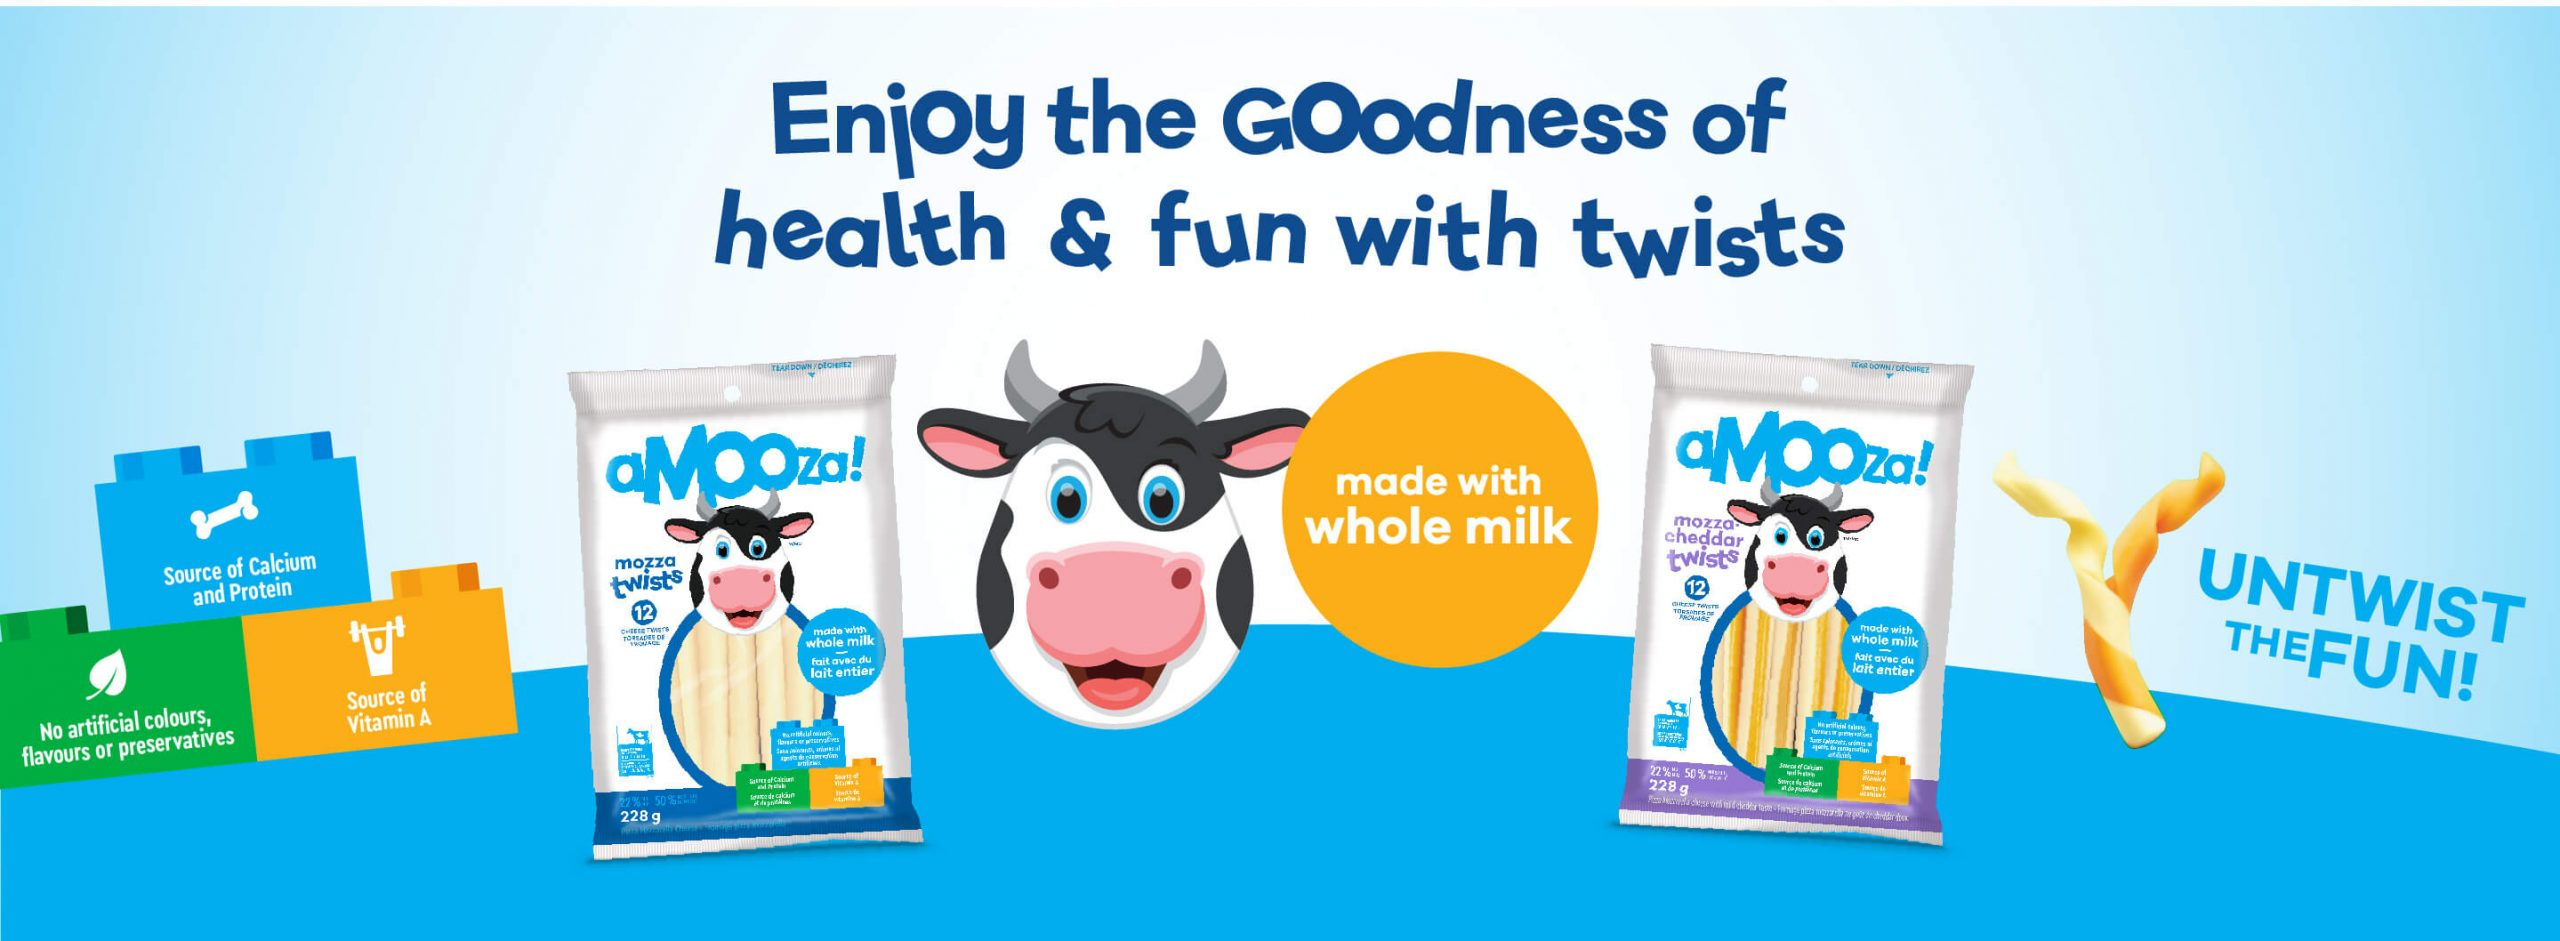 Enjoy the goodness of health and fun with twists. Made with whole milk. Untwist the fun!